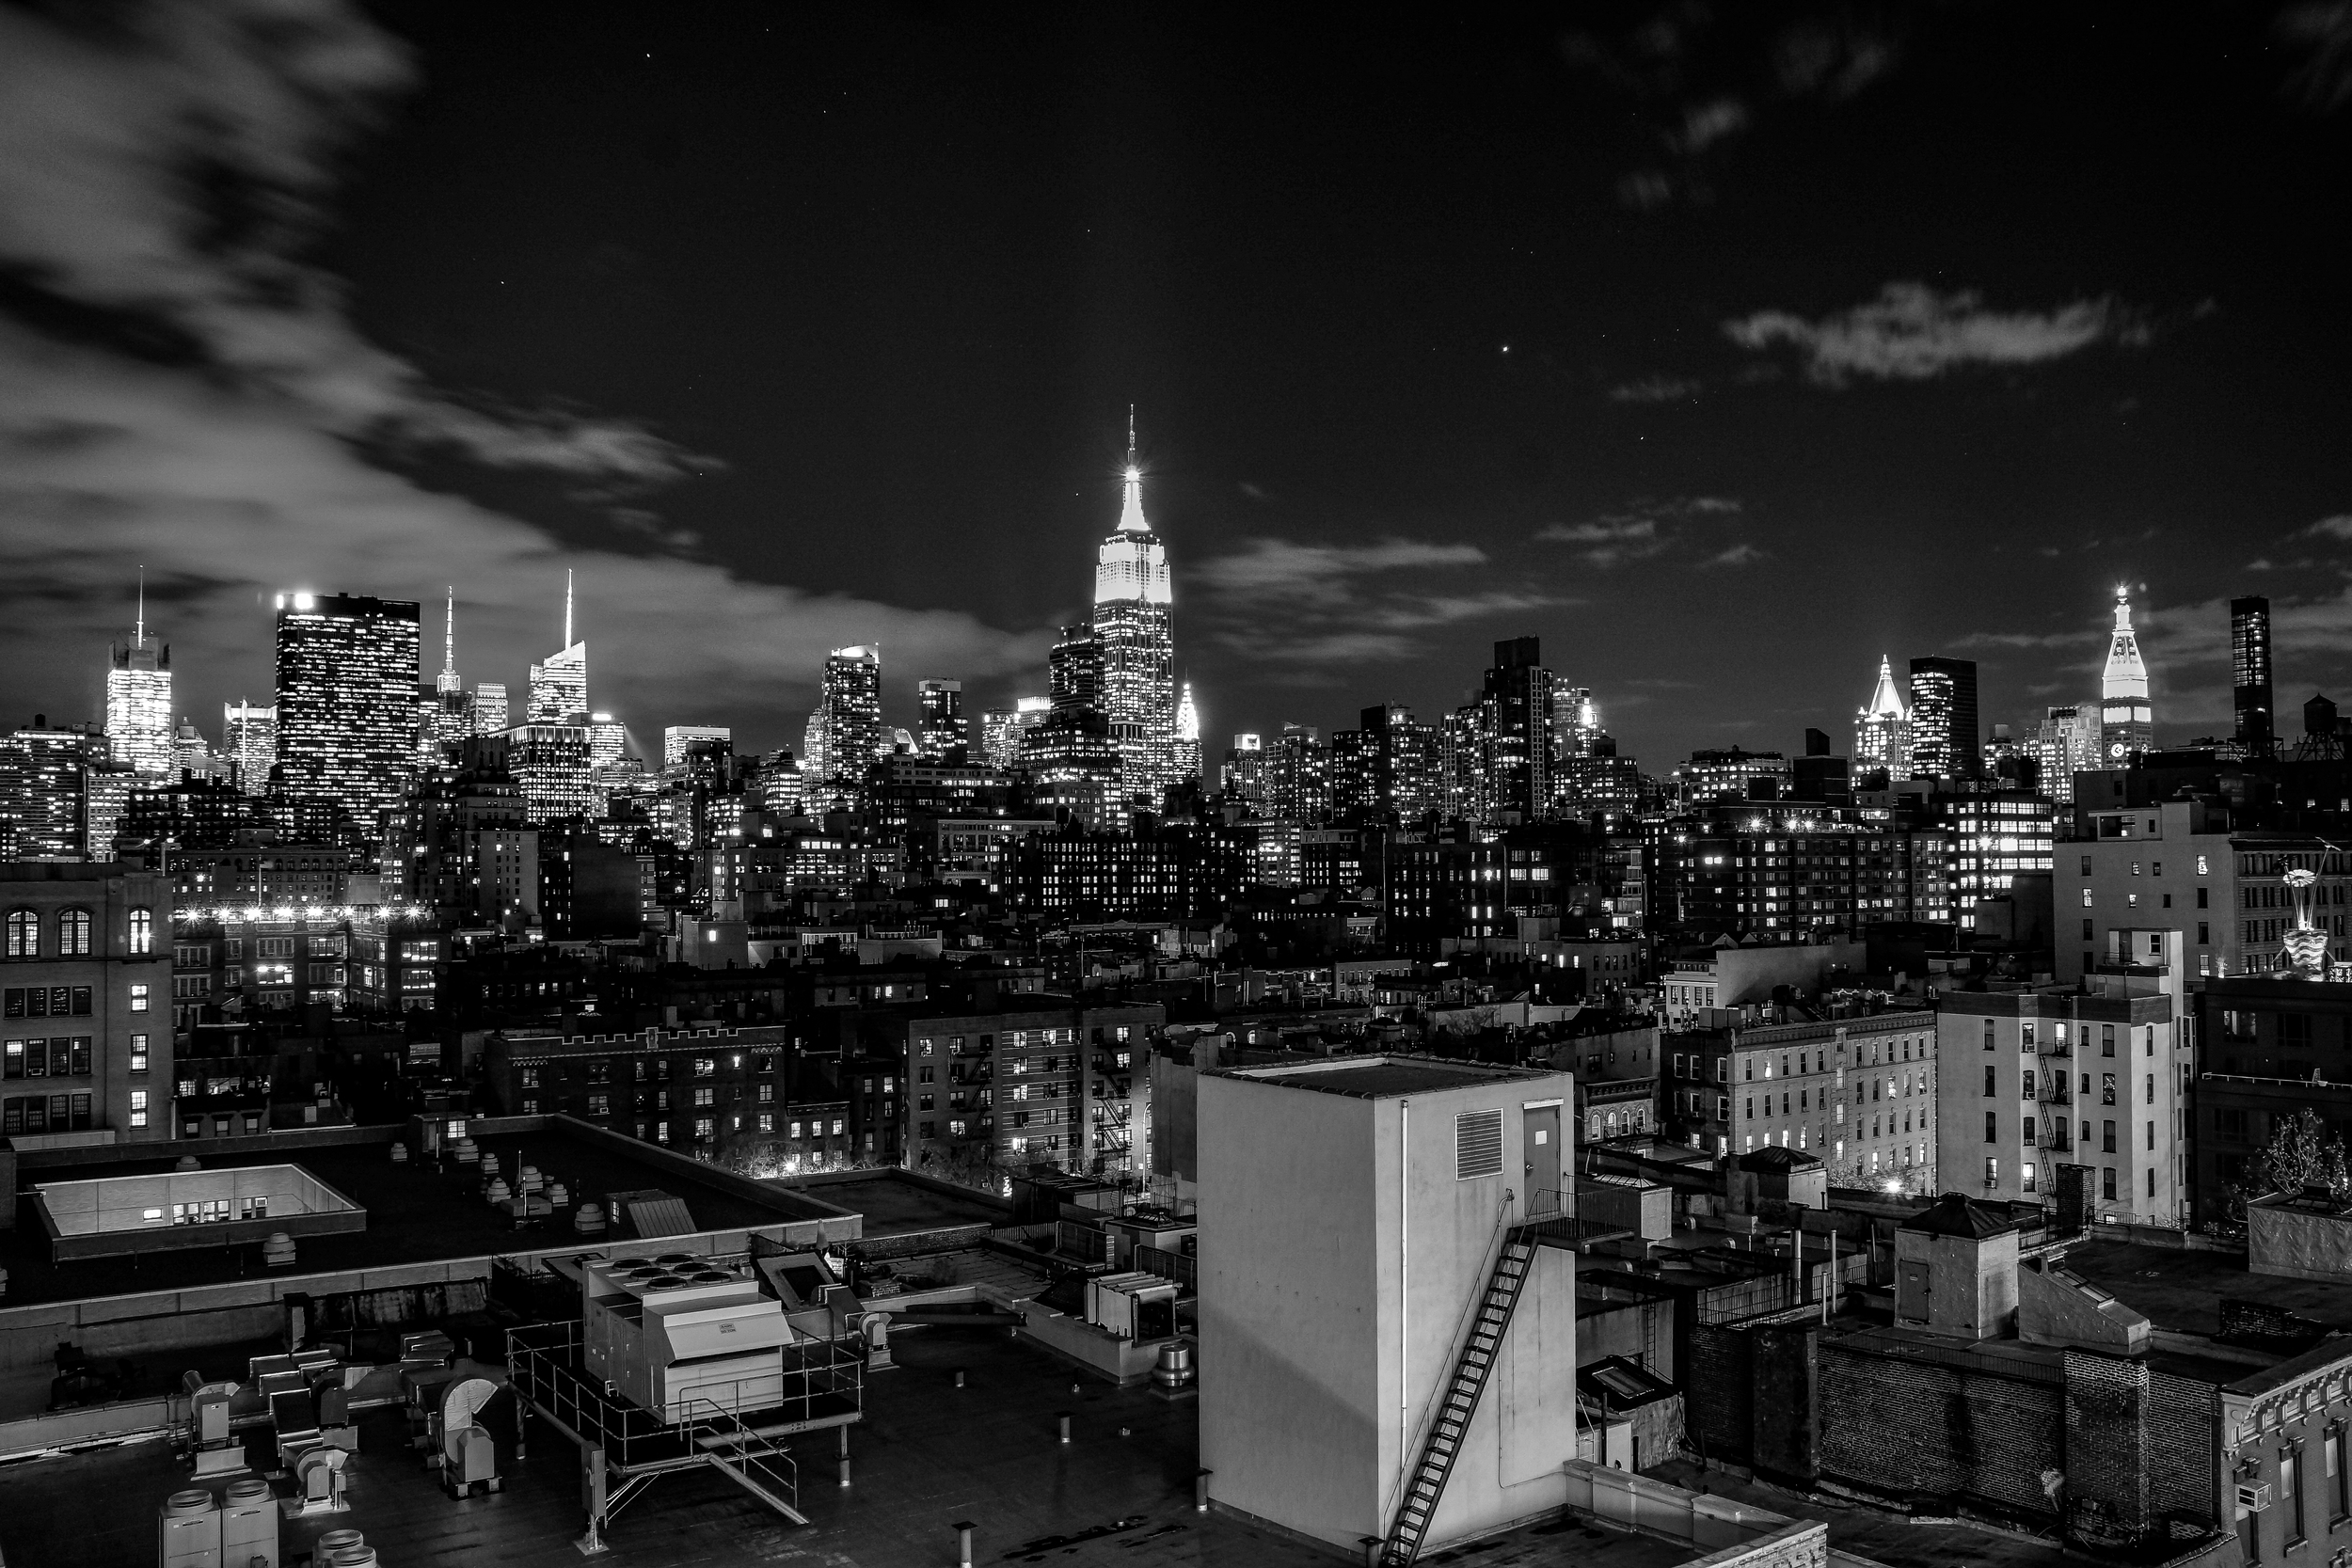 The view from Google, 2012. This is the photo that inspired this project.